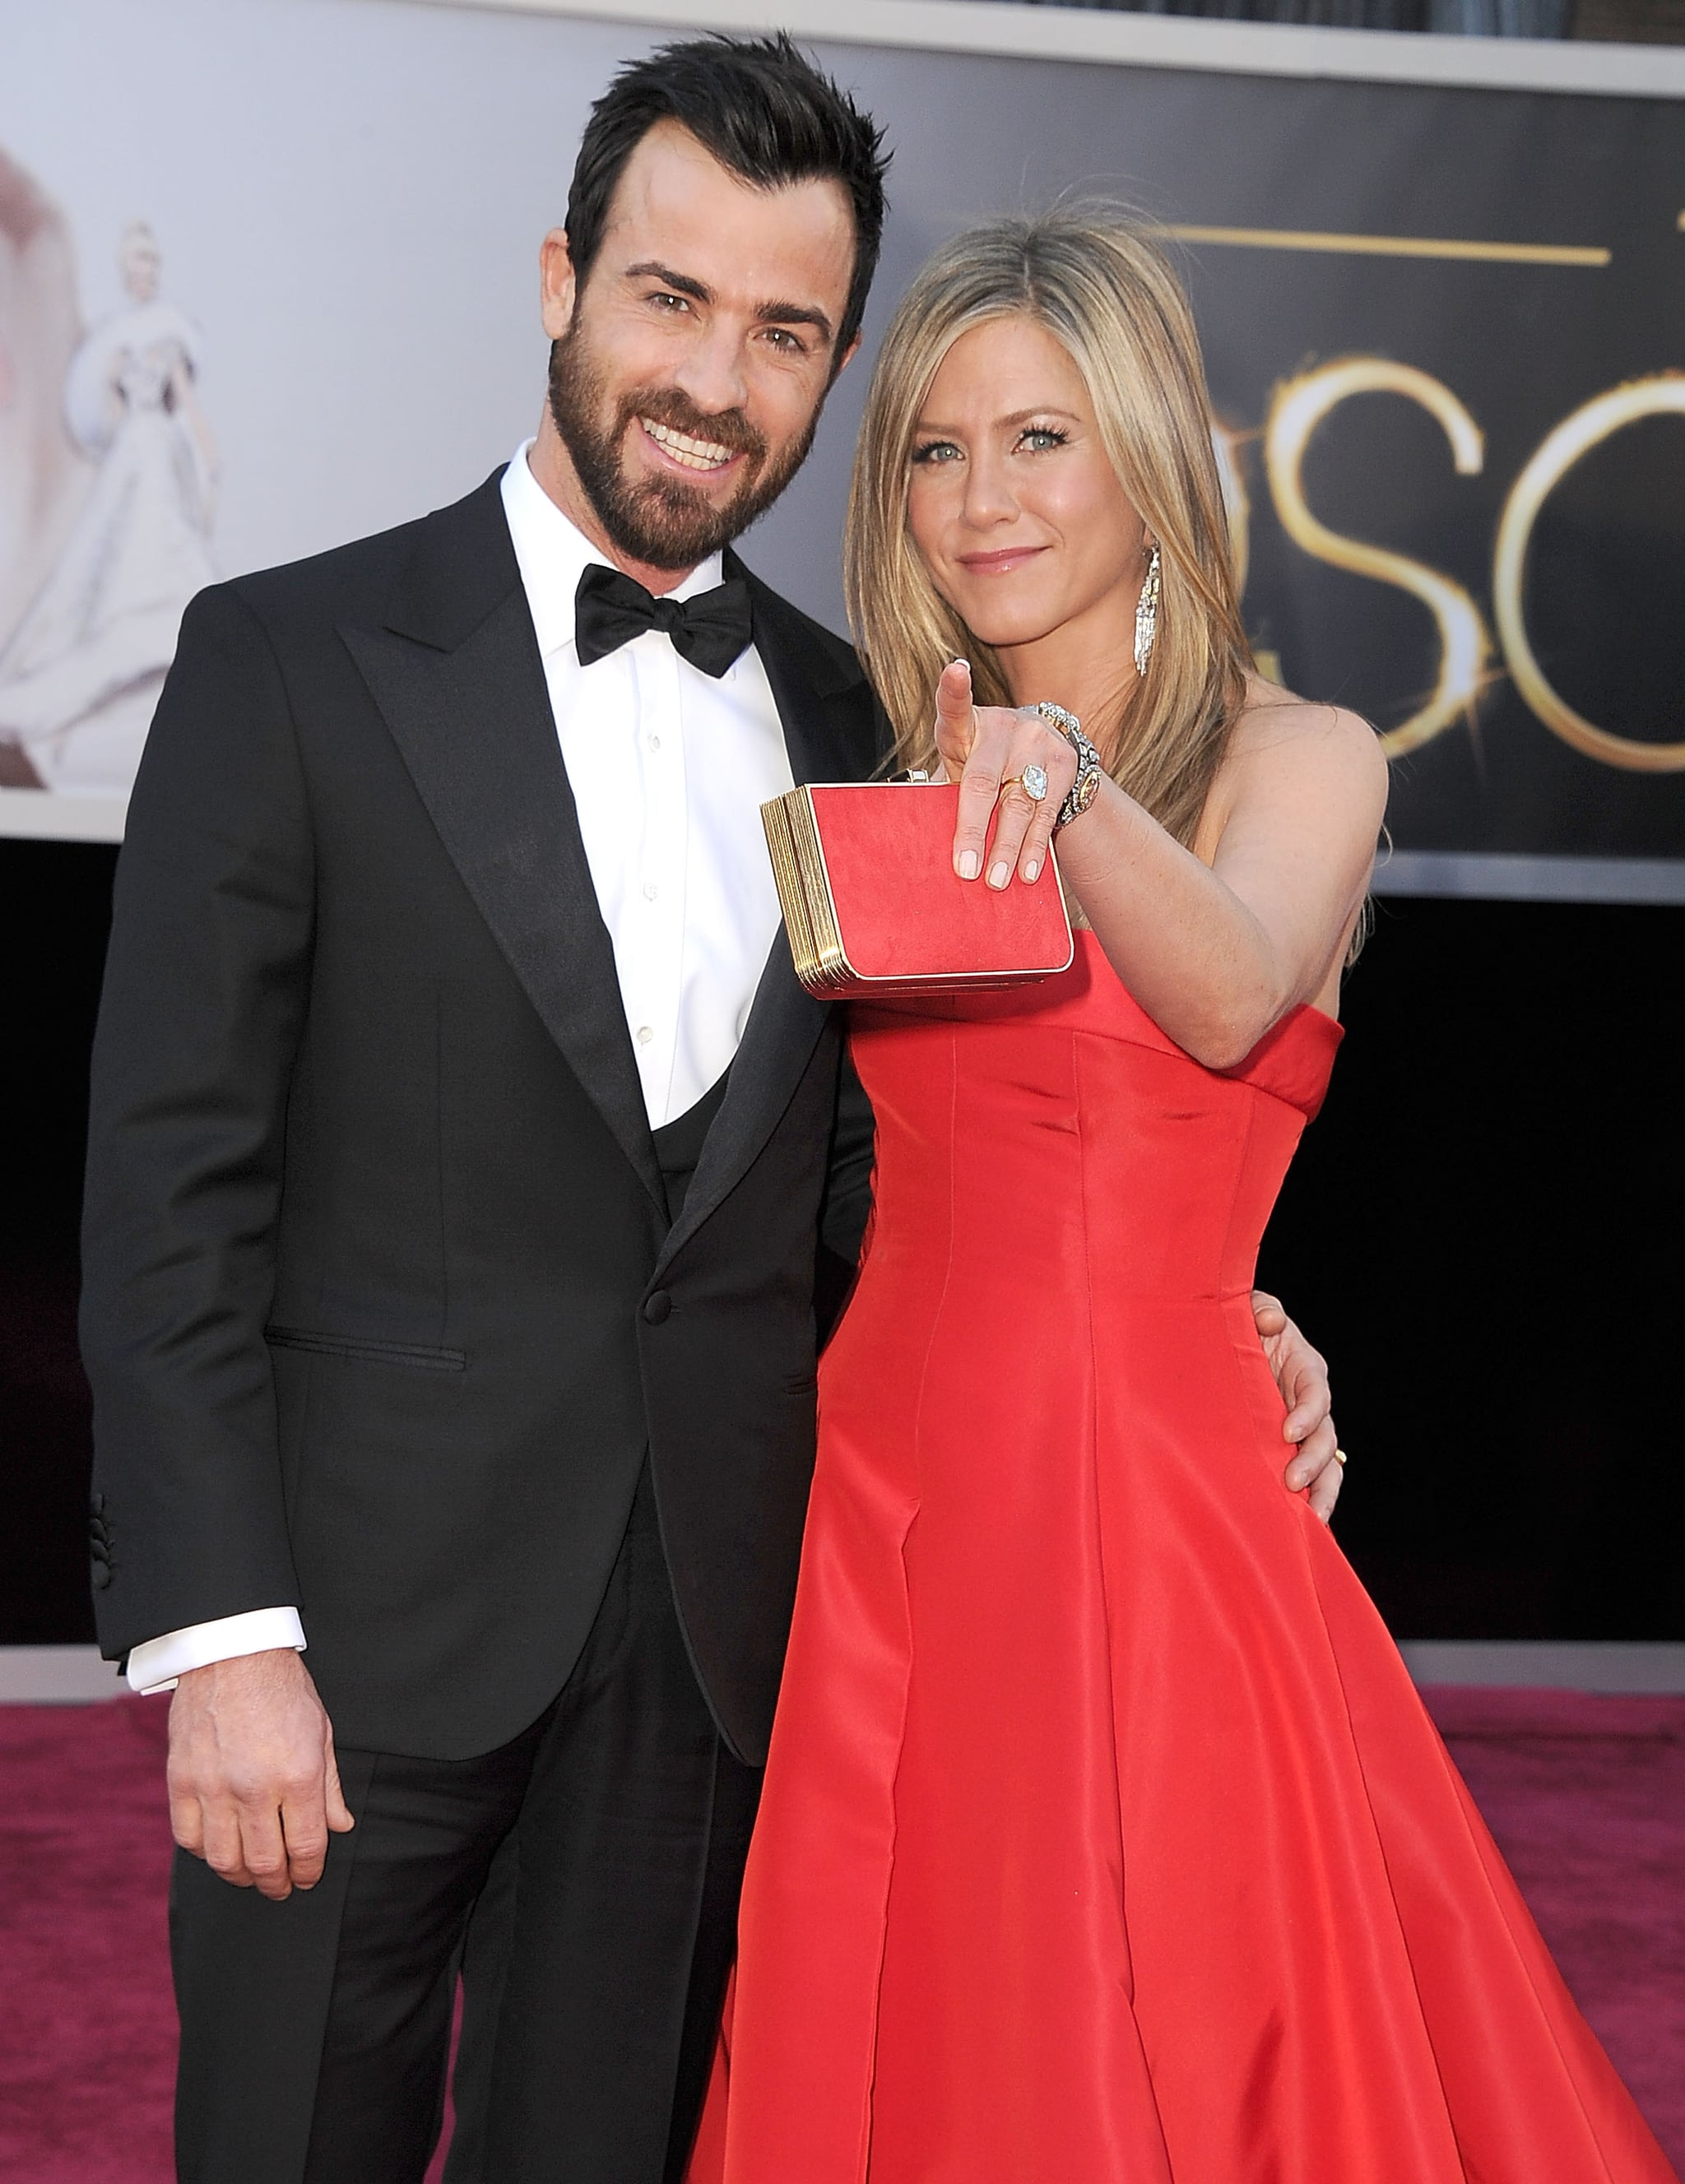 Jennifer Aniston showed Justin Theroux the ropes on the red carpet.